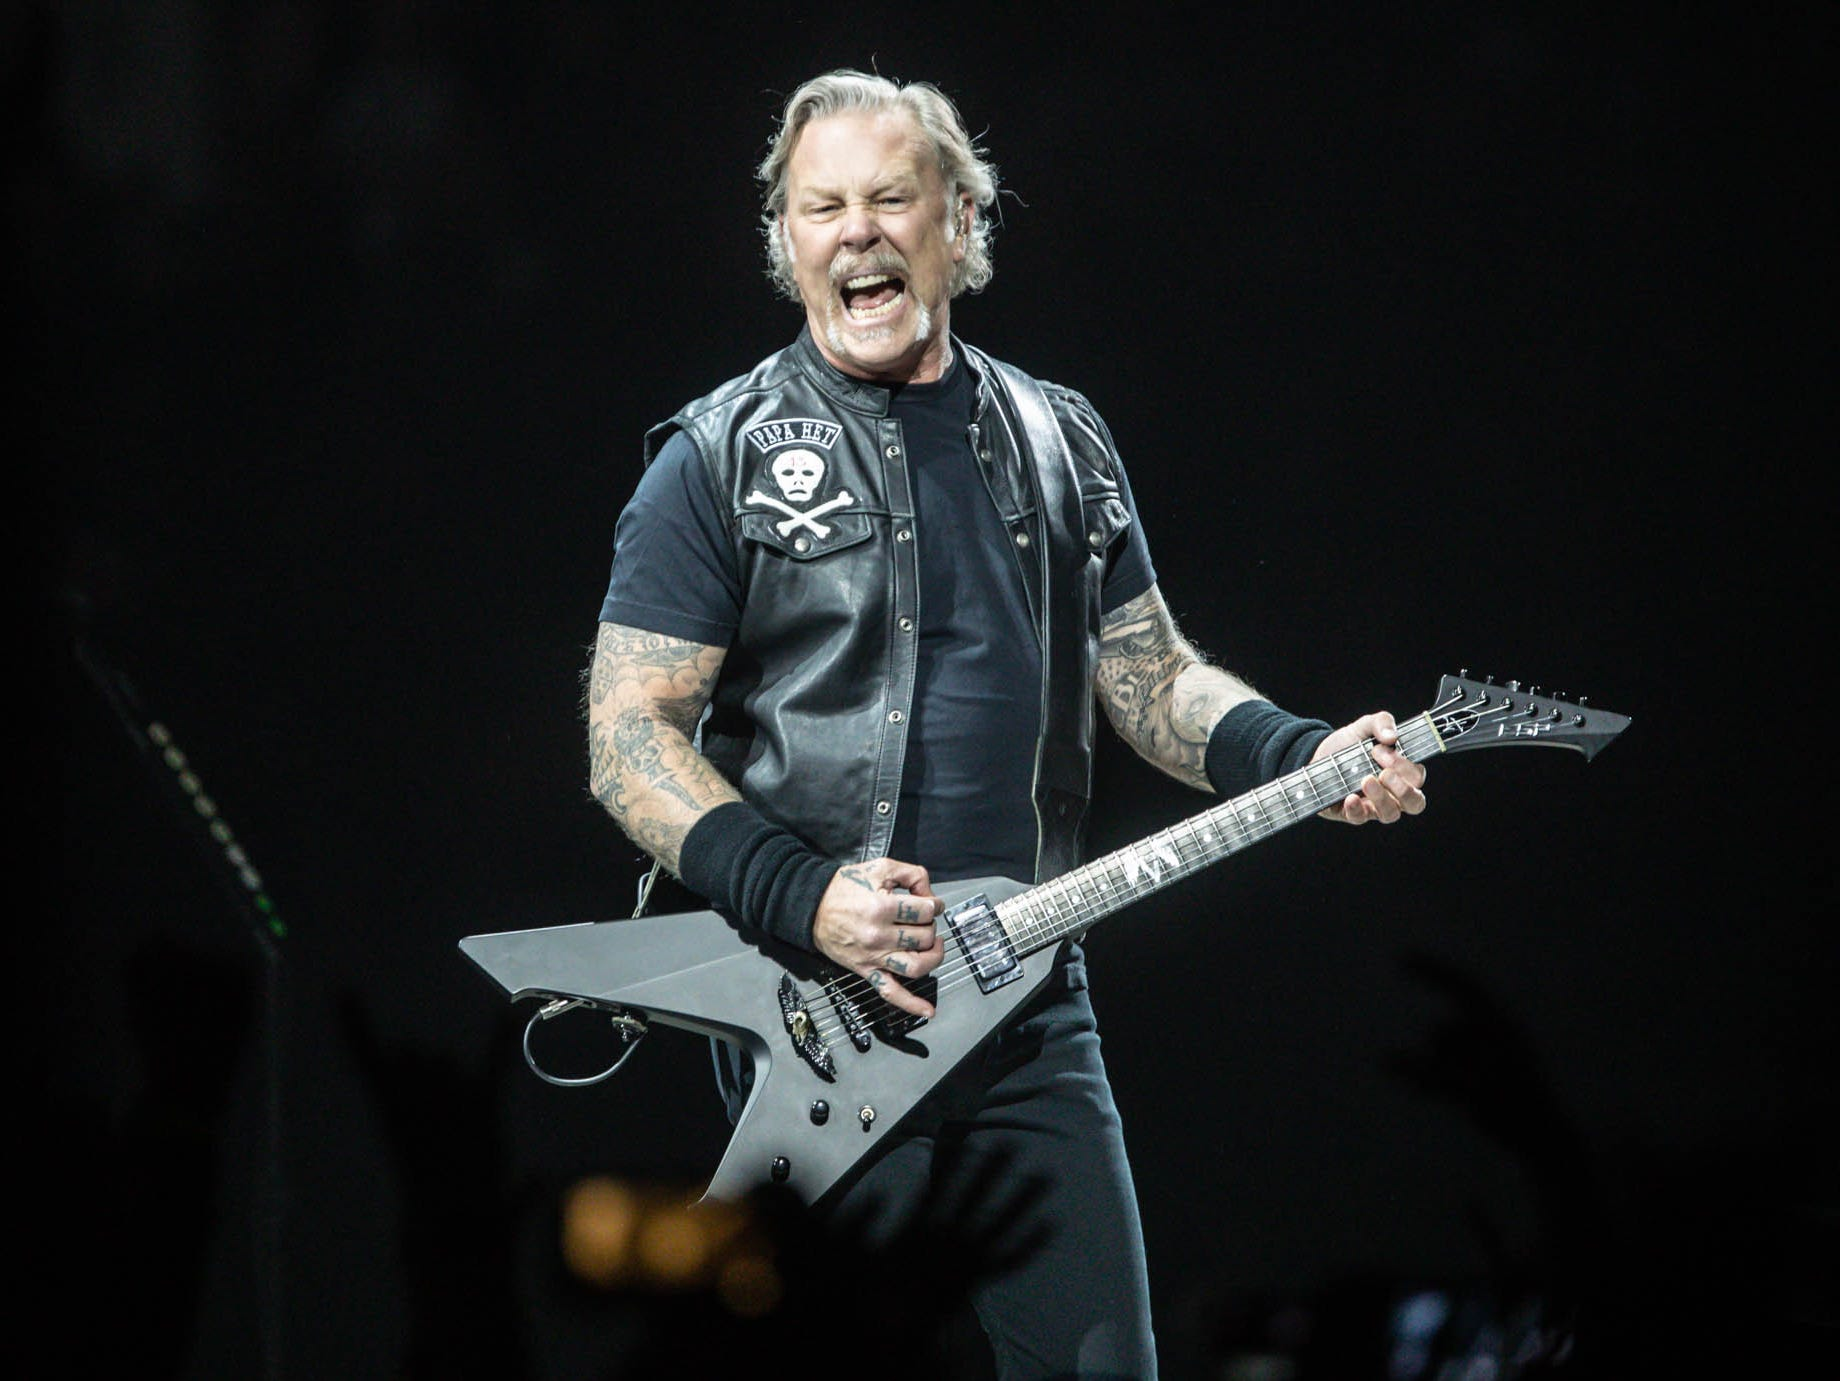 Original Metallica member James Hetfield performs as the band brings their WorldWired Tour to Bankers Life Fieldhouse on Monday, March 11, 2019.